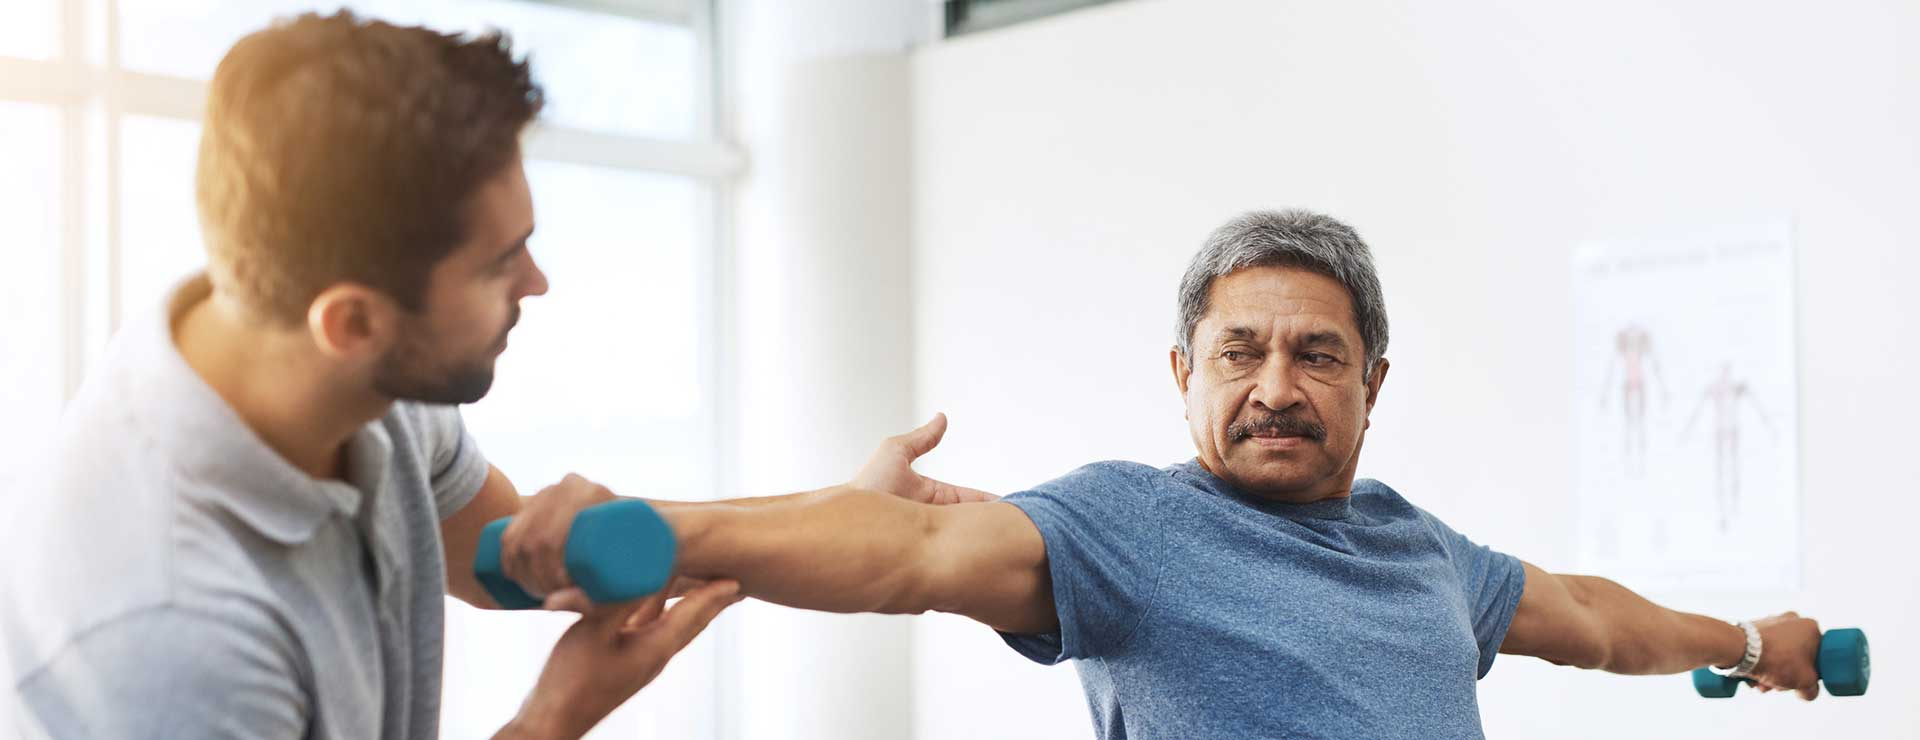 A trainer helps a man with weight training